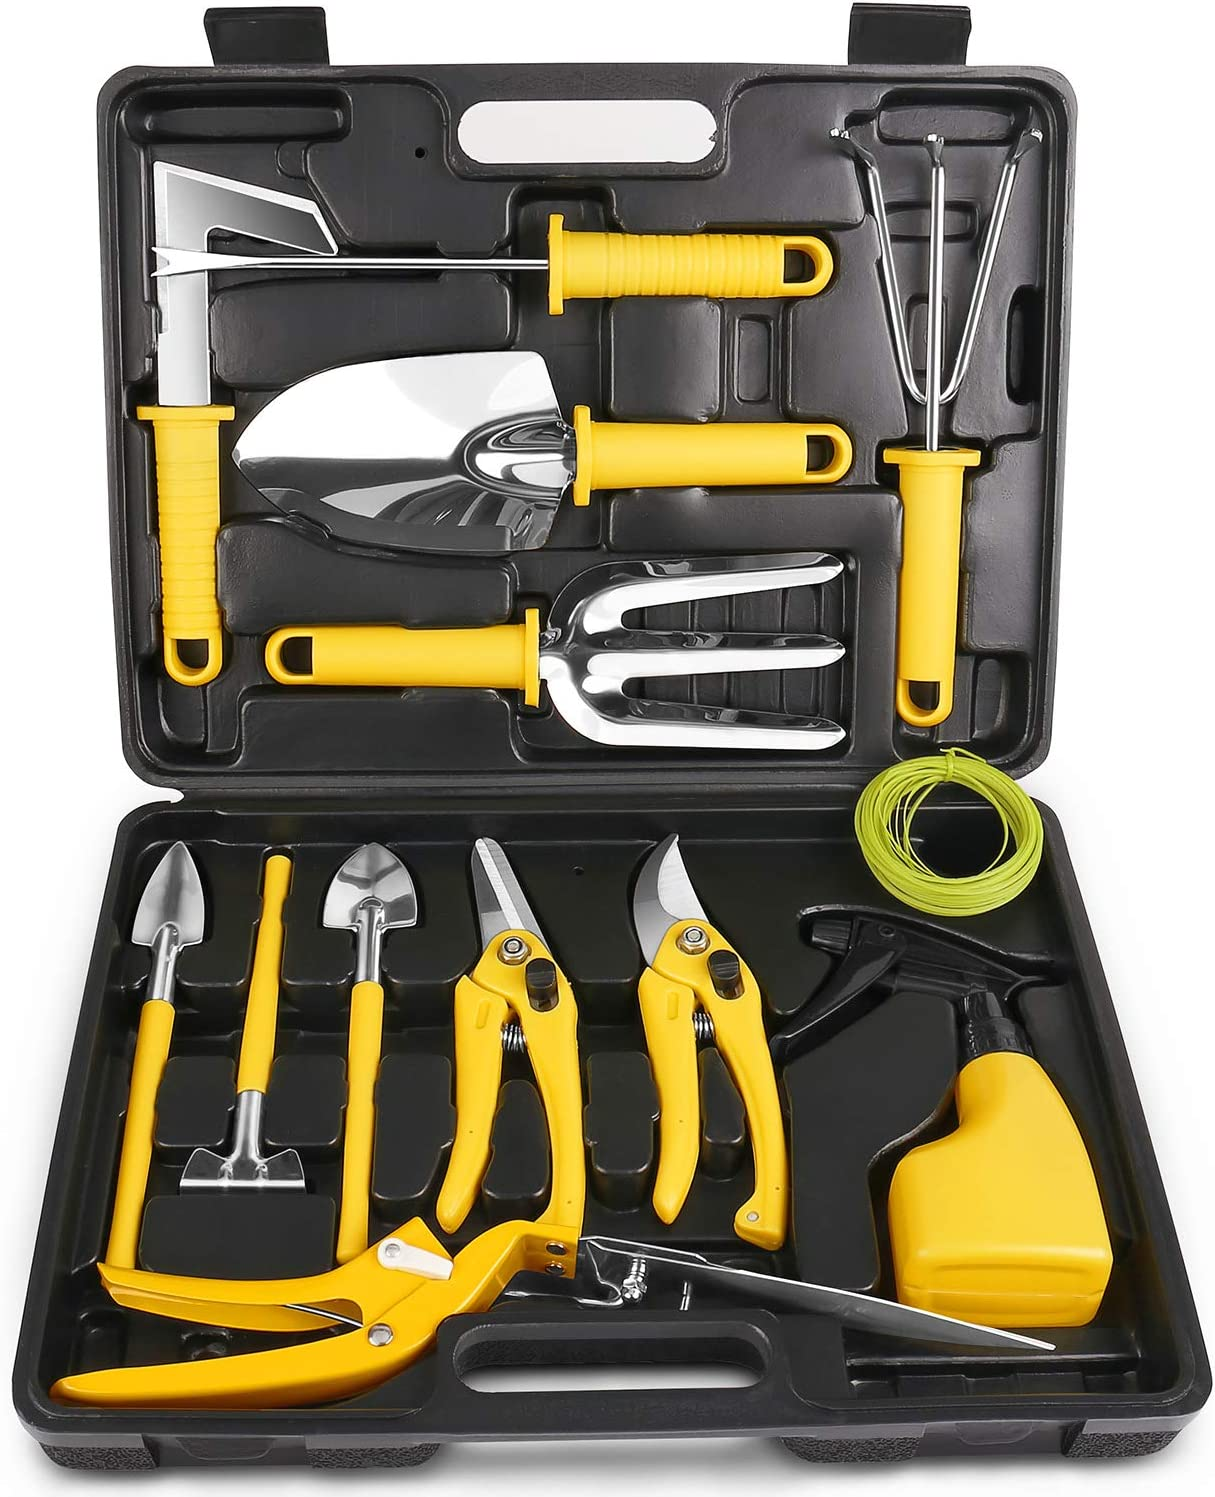 MOSFiATA Garden Tools Set Max 68% Special Campaign OFF 14 Pcs Tool Steel Stainless Kit